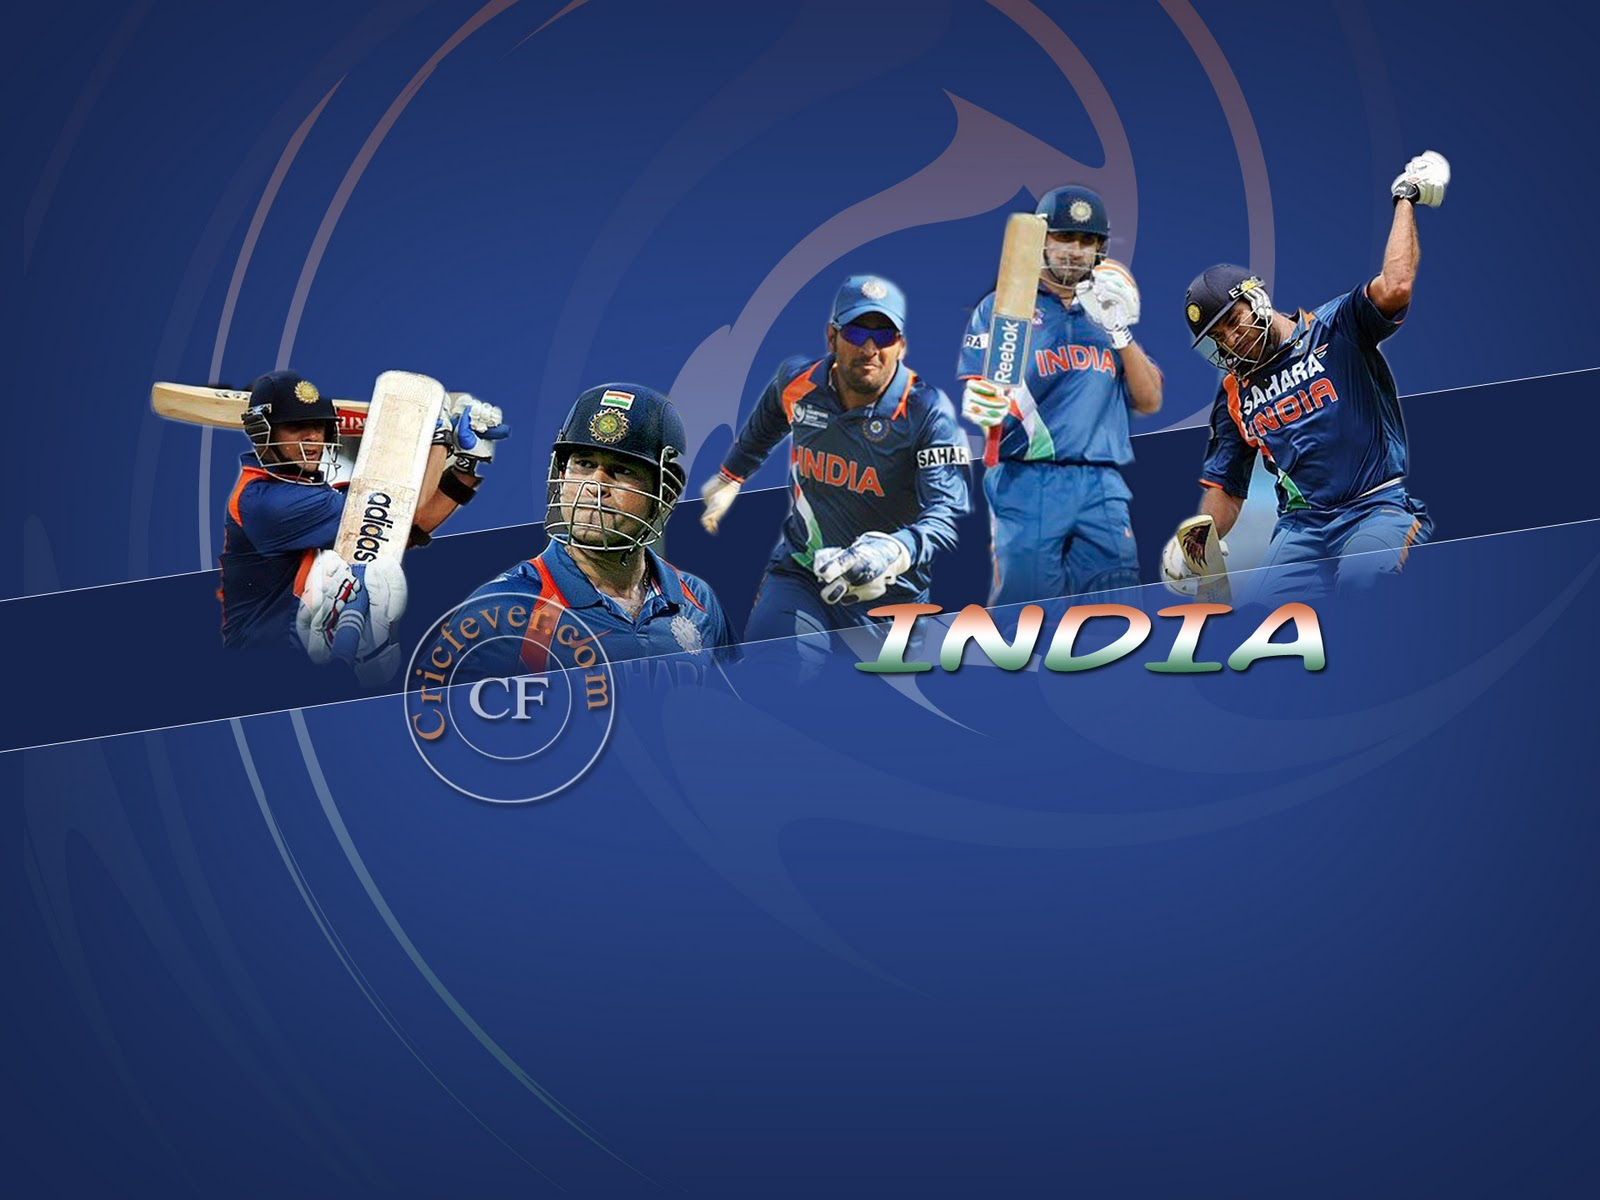 All Sports Wallpapers: India cricket team wallpapers